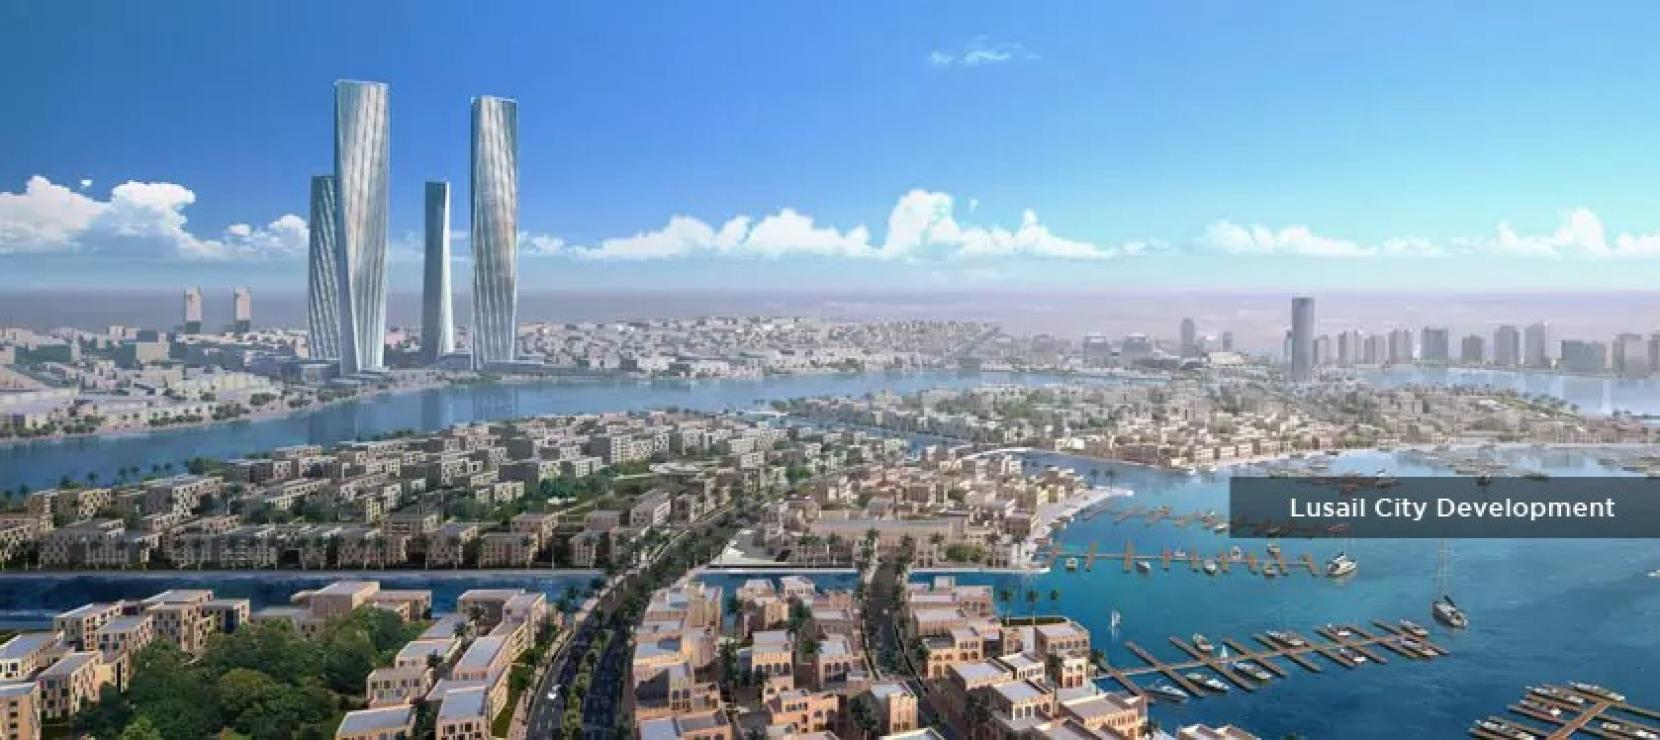 New Project in Lusail City